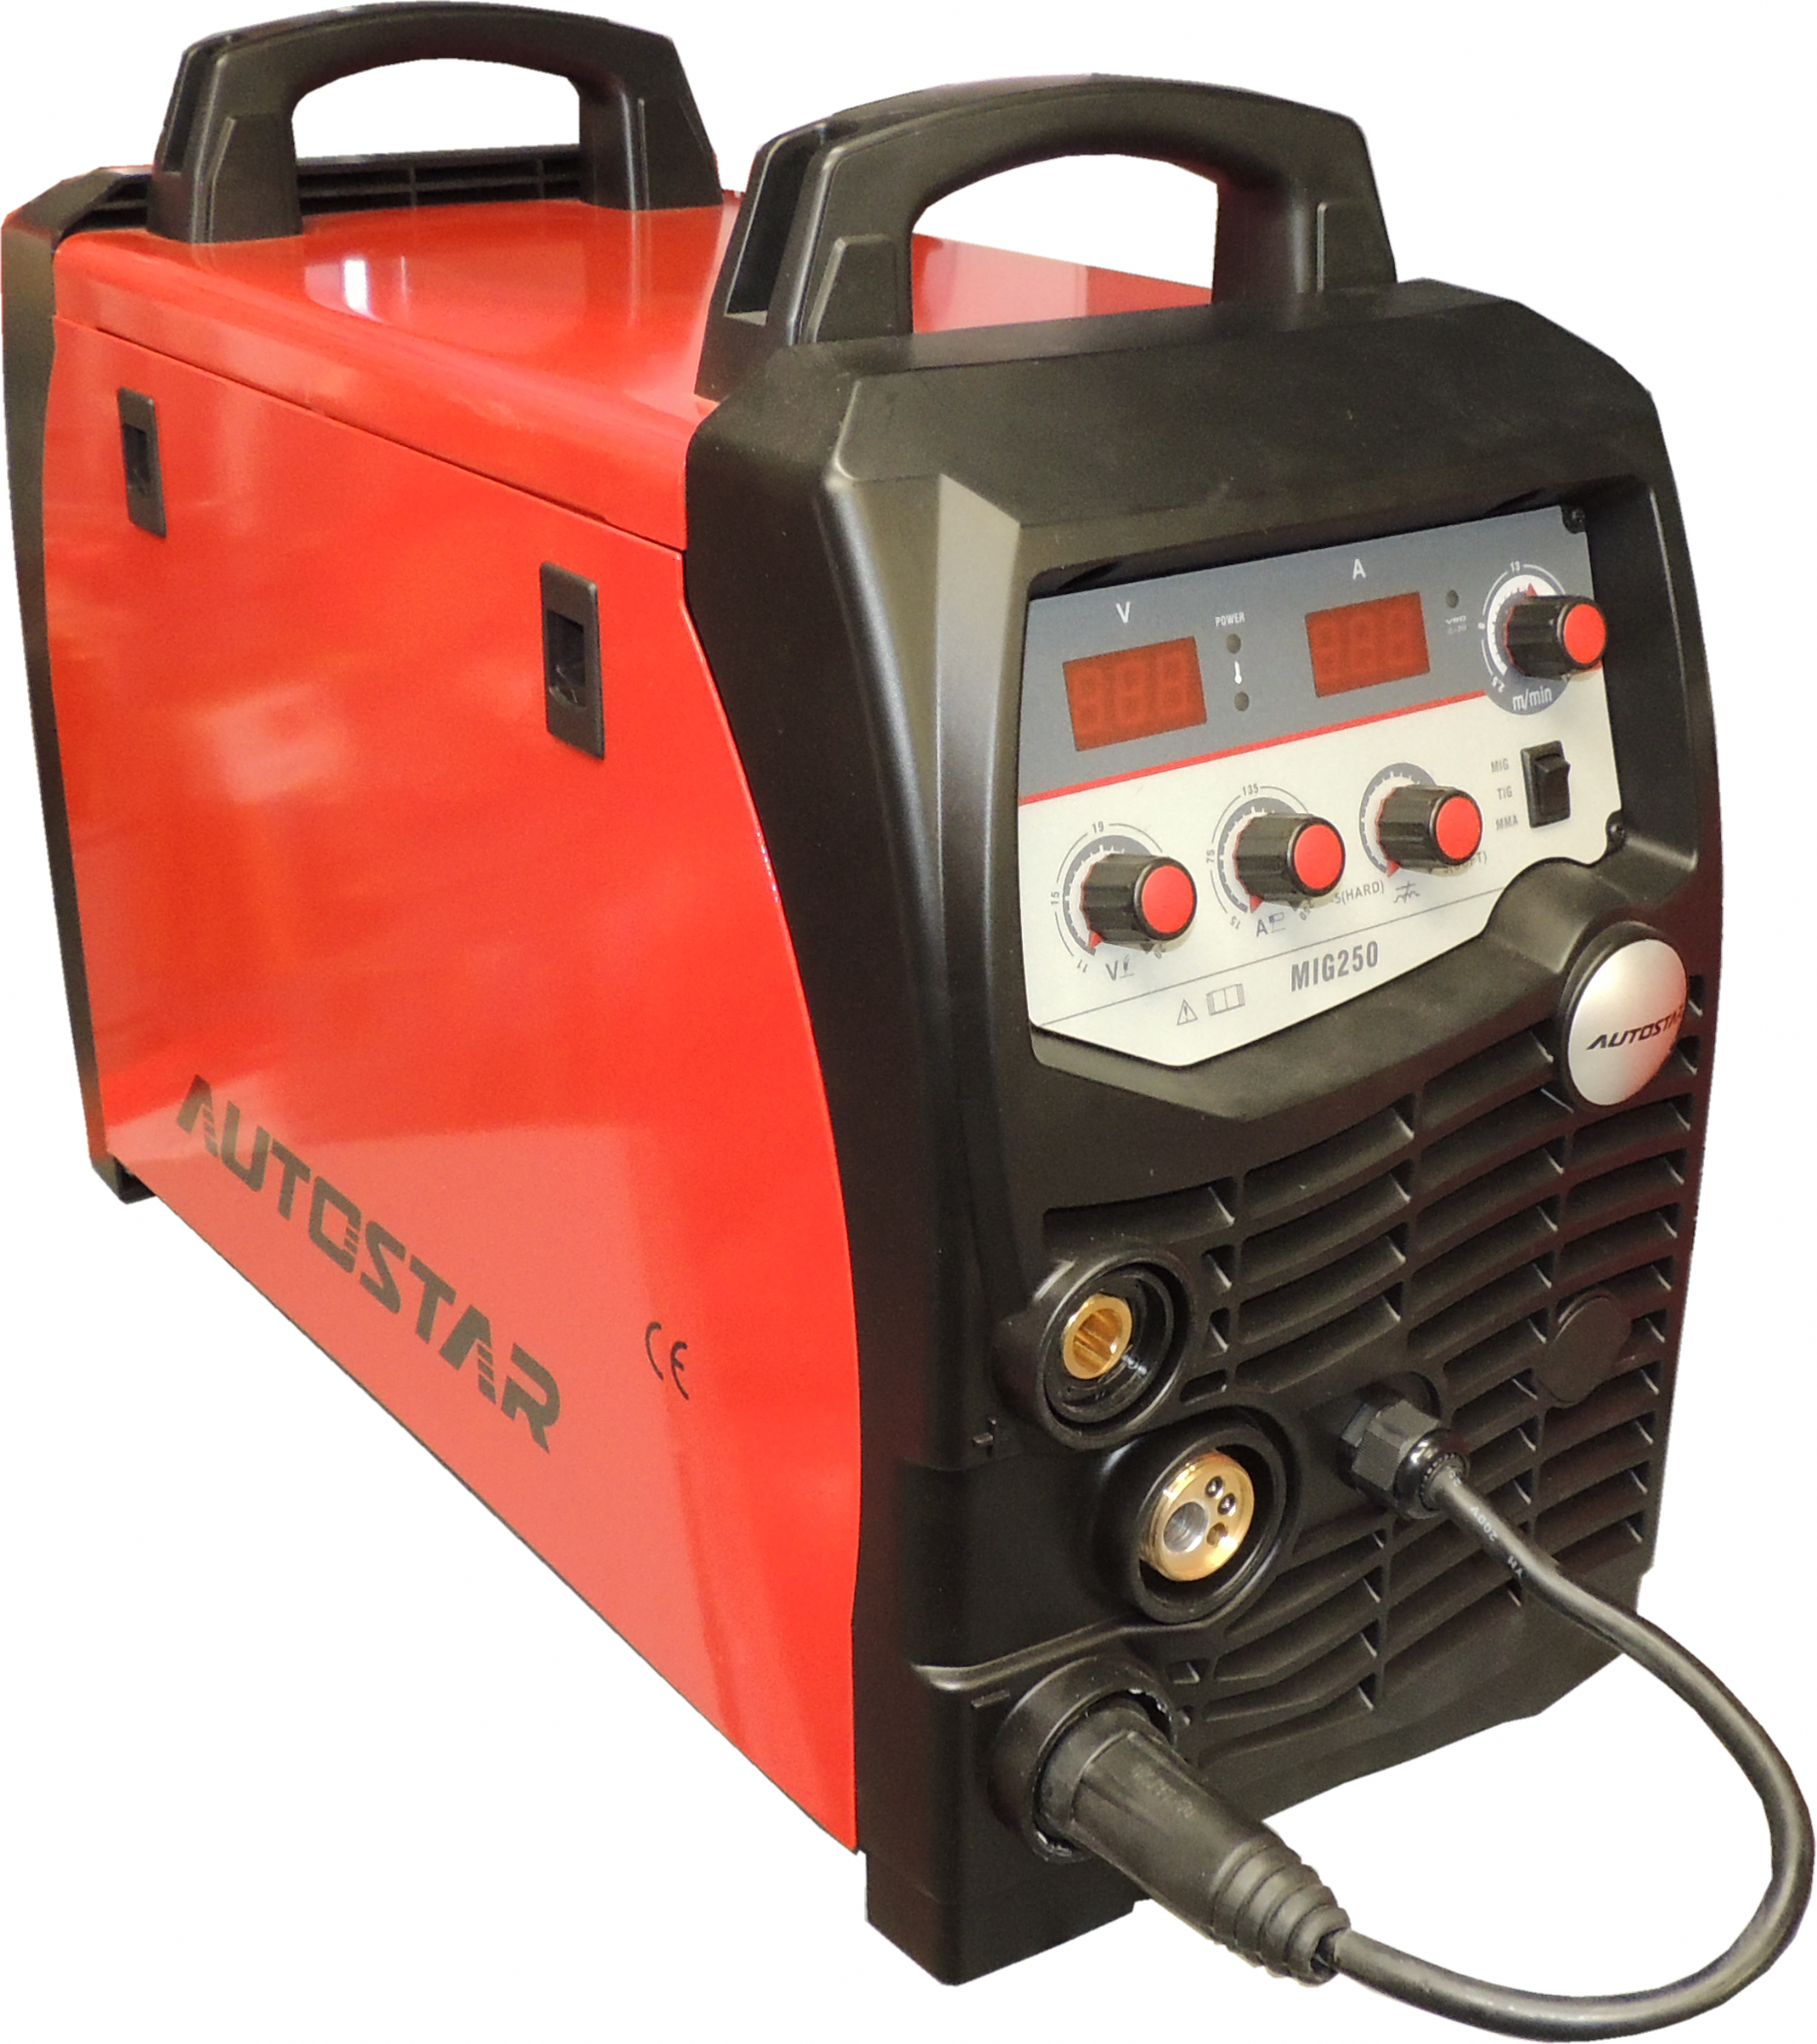 MIG Welder Autostar AS-250 - 250A Compact Inverter Welder